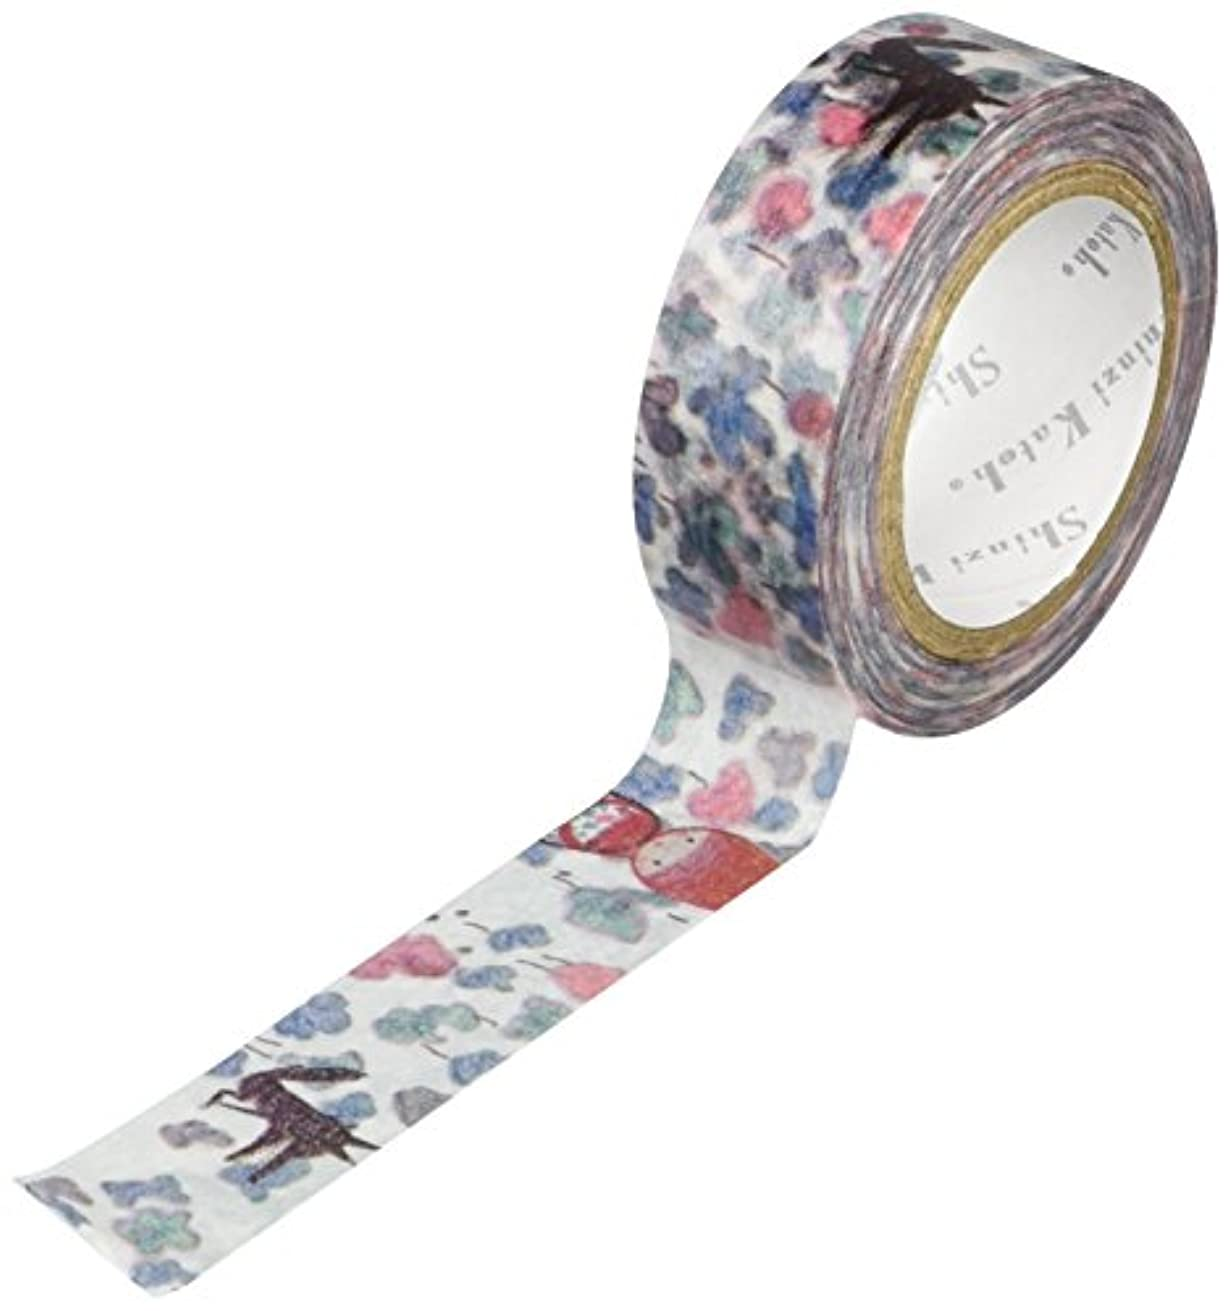 SEAL-DO Shinzi Katoh Washi Masking Tape, 15mm x 10m, Red Hood (ks-mt-10029)